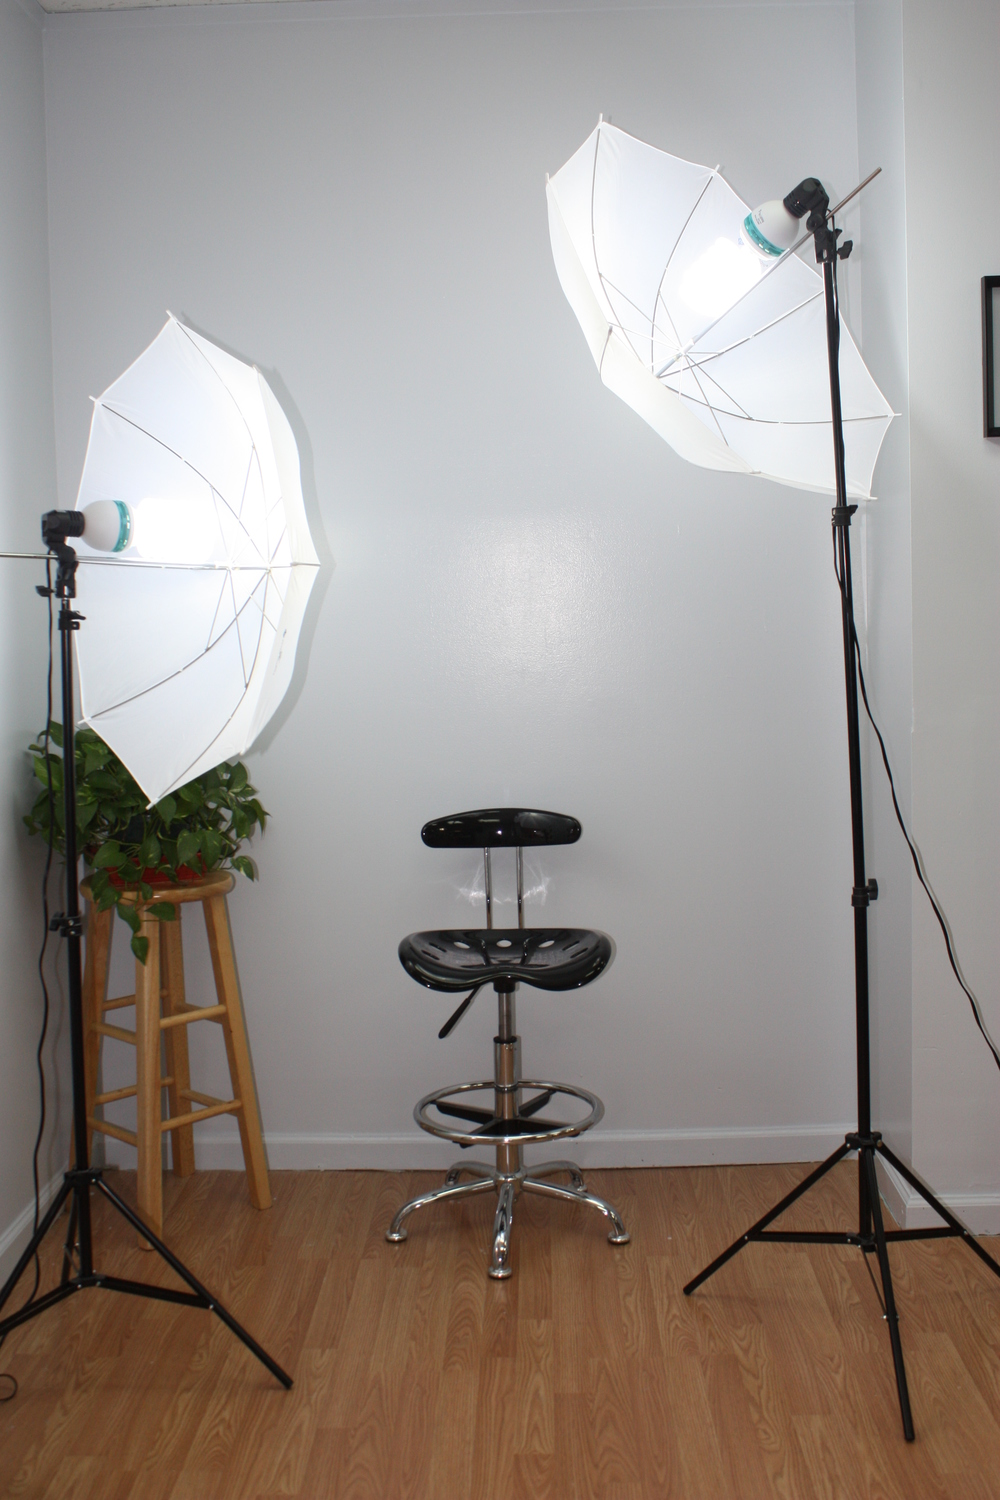 We have our very own photo shoot set up to capture your new look!  Now how many salons can say that!?